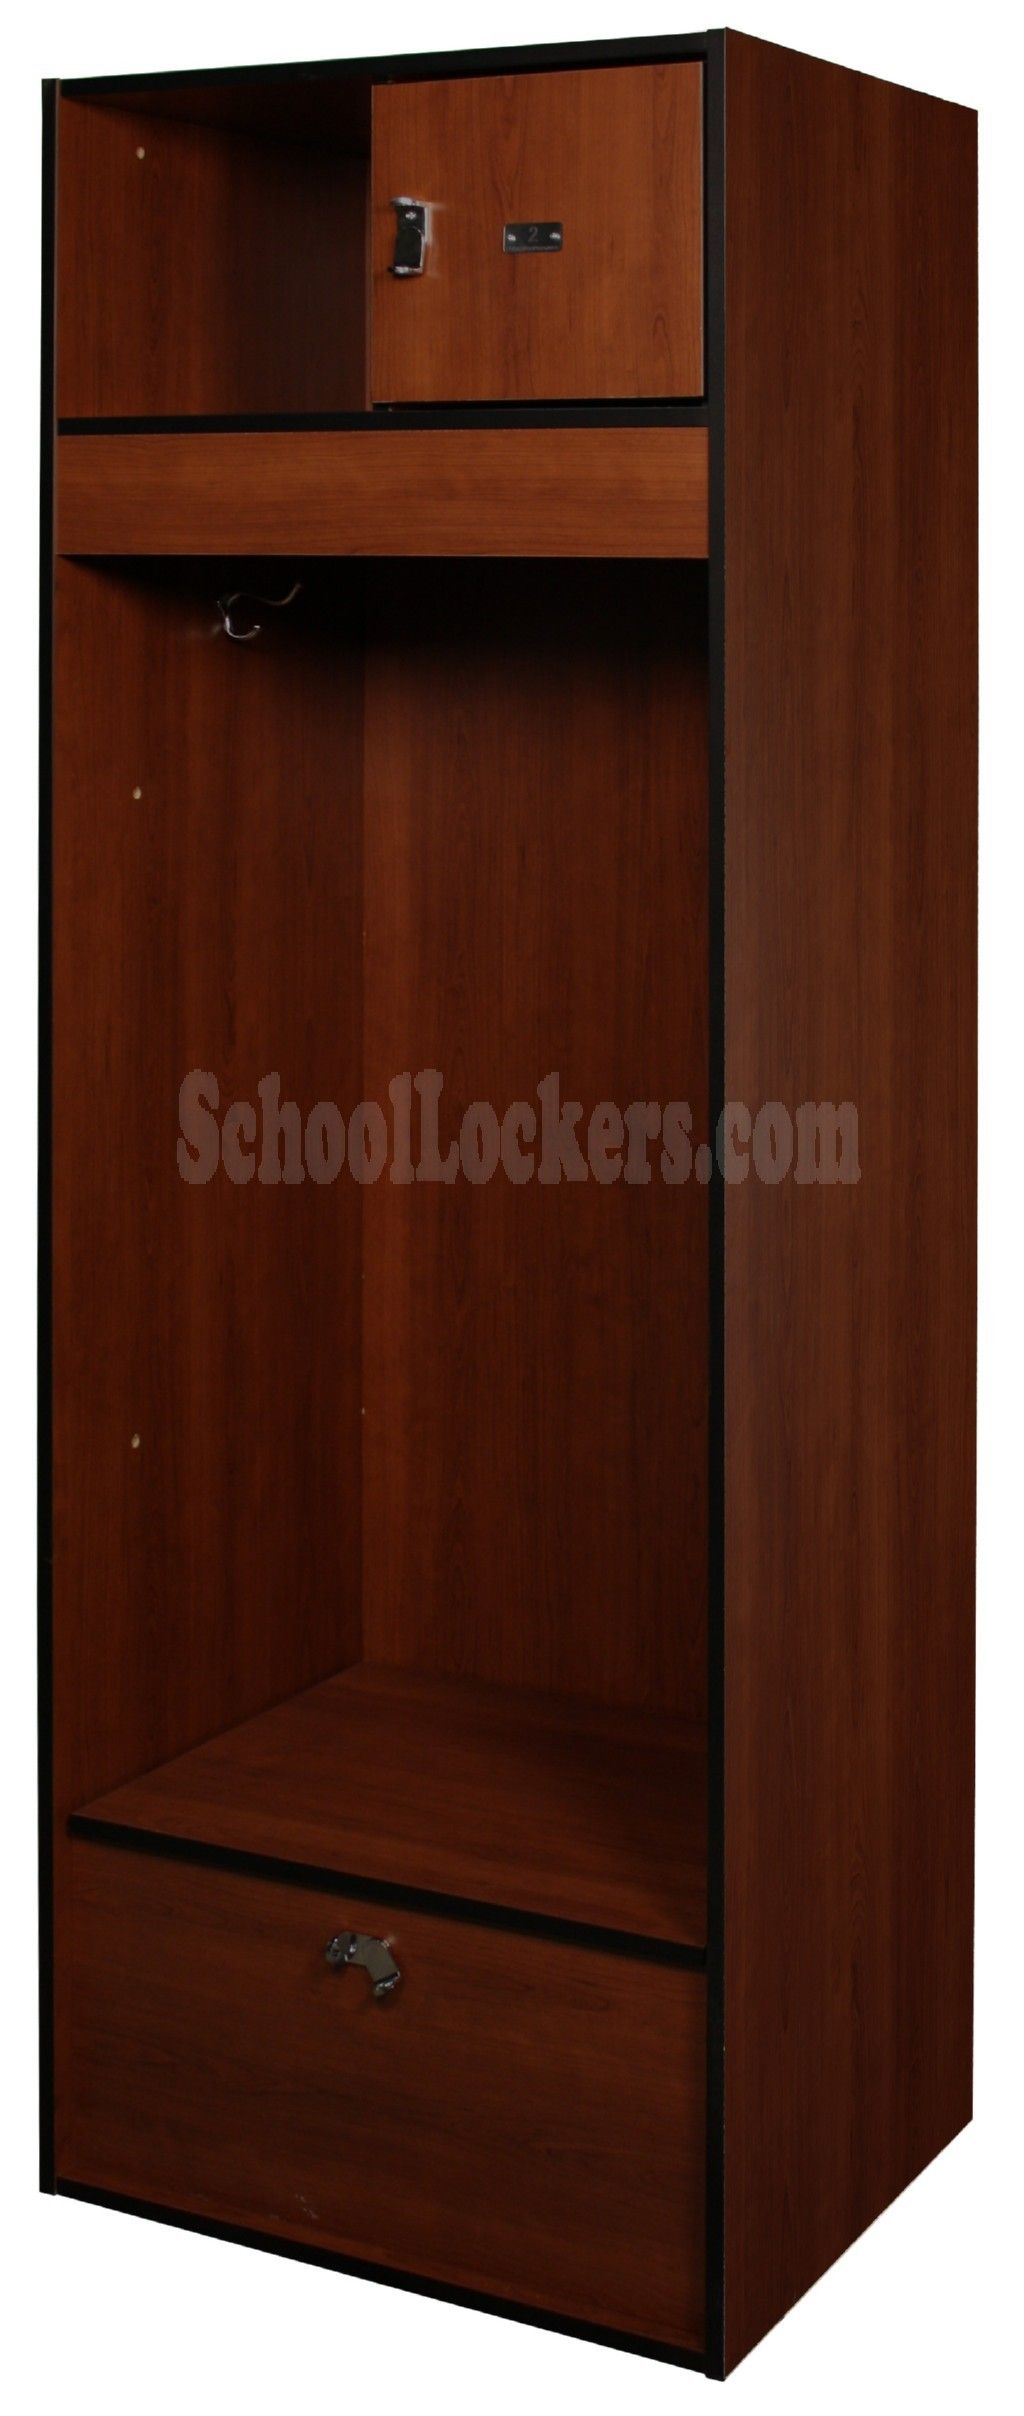 lockers for visiting competitors and schoolers